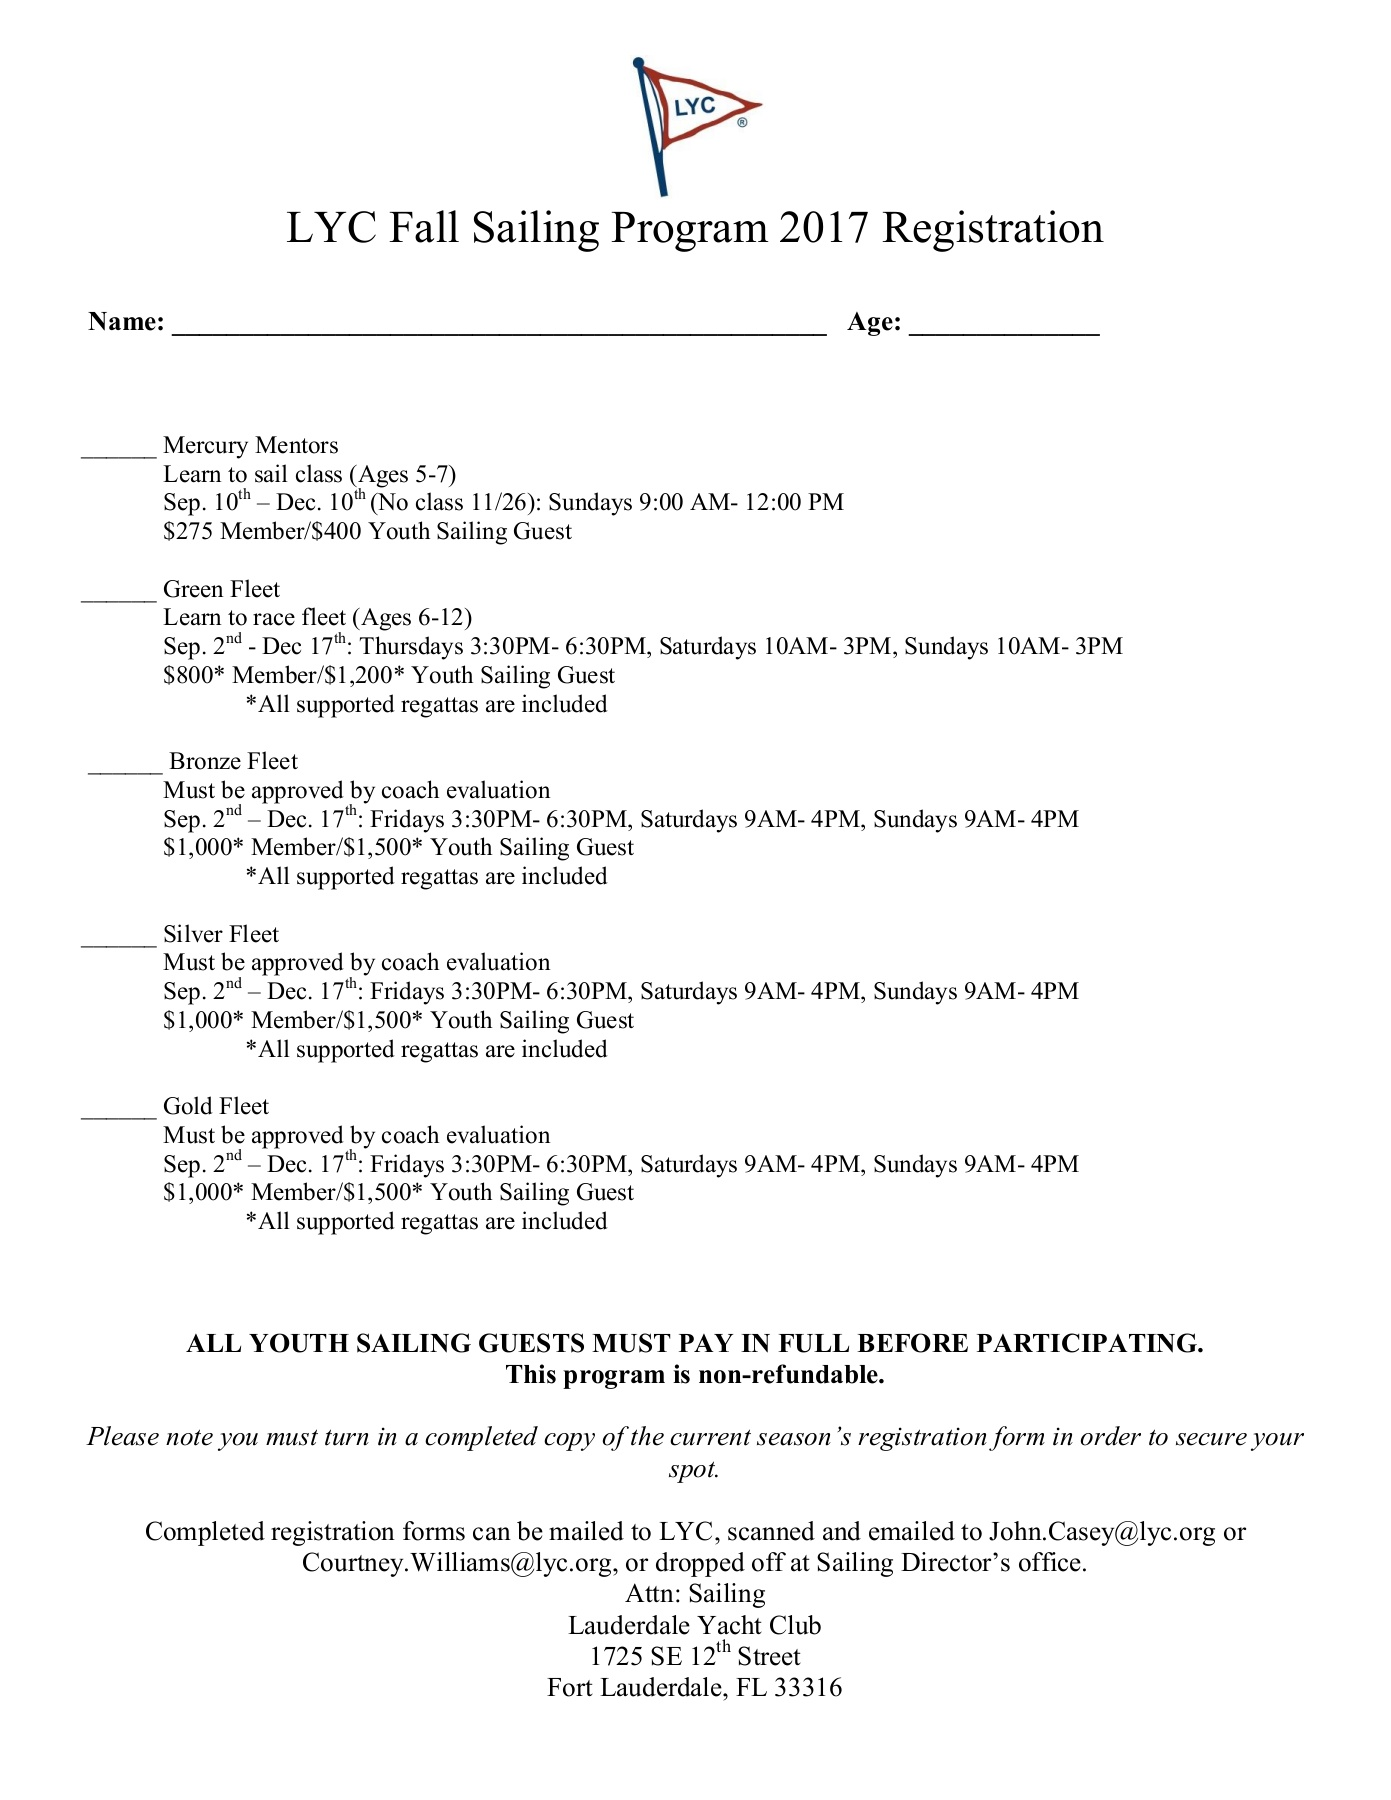 LYC Fall Opti Registration 2017 Pages 1 - 10 - Text Version